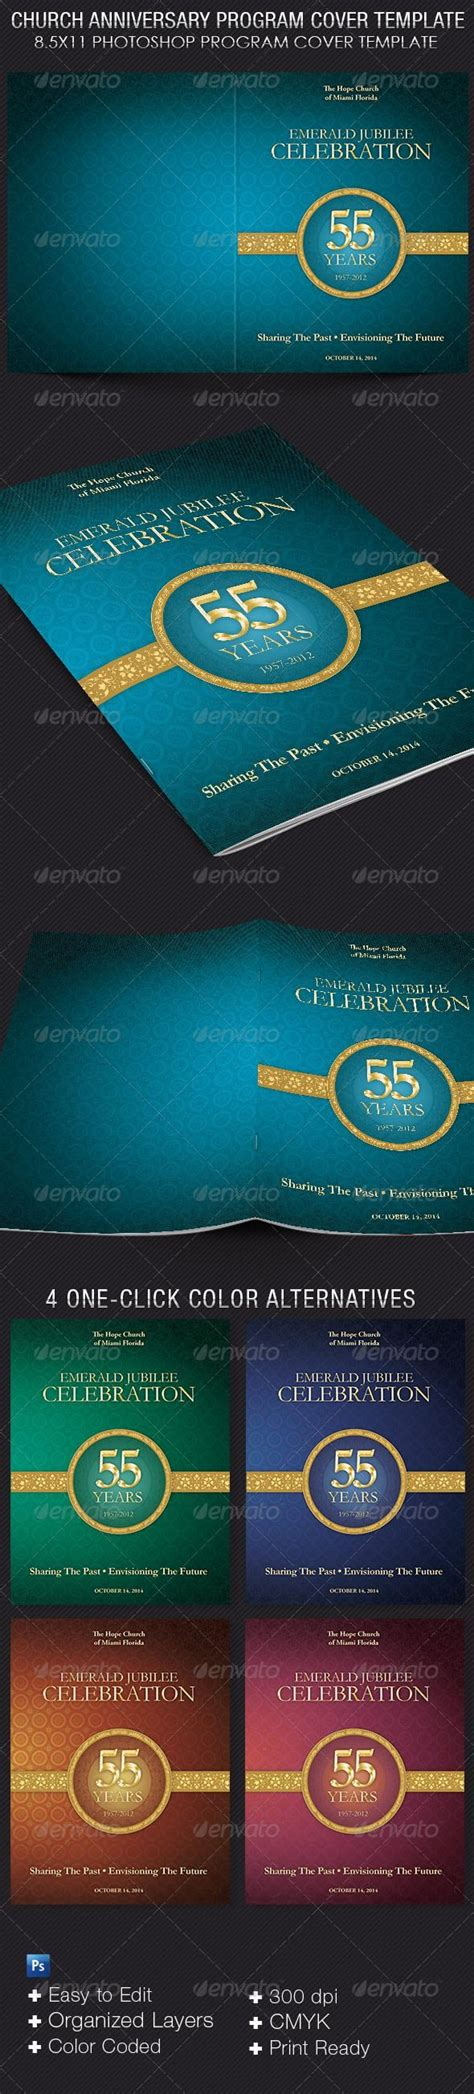 17 Best Images About 20th Anniversary Logo Ideas On Pinterest Vinyl Banners Vintage Wedding Church Homecoming Program Template